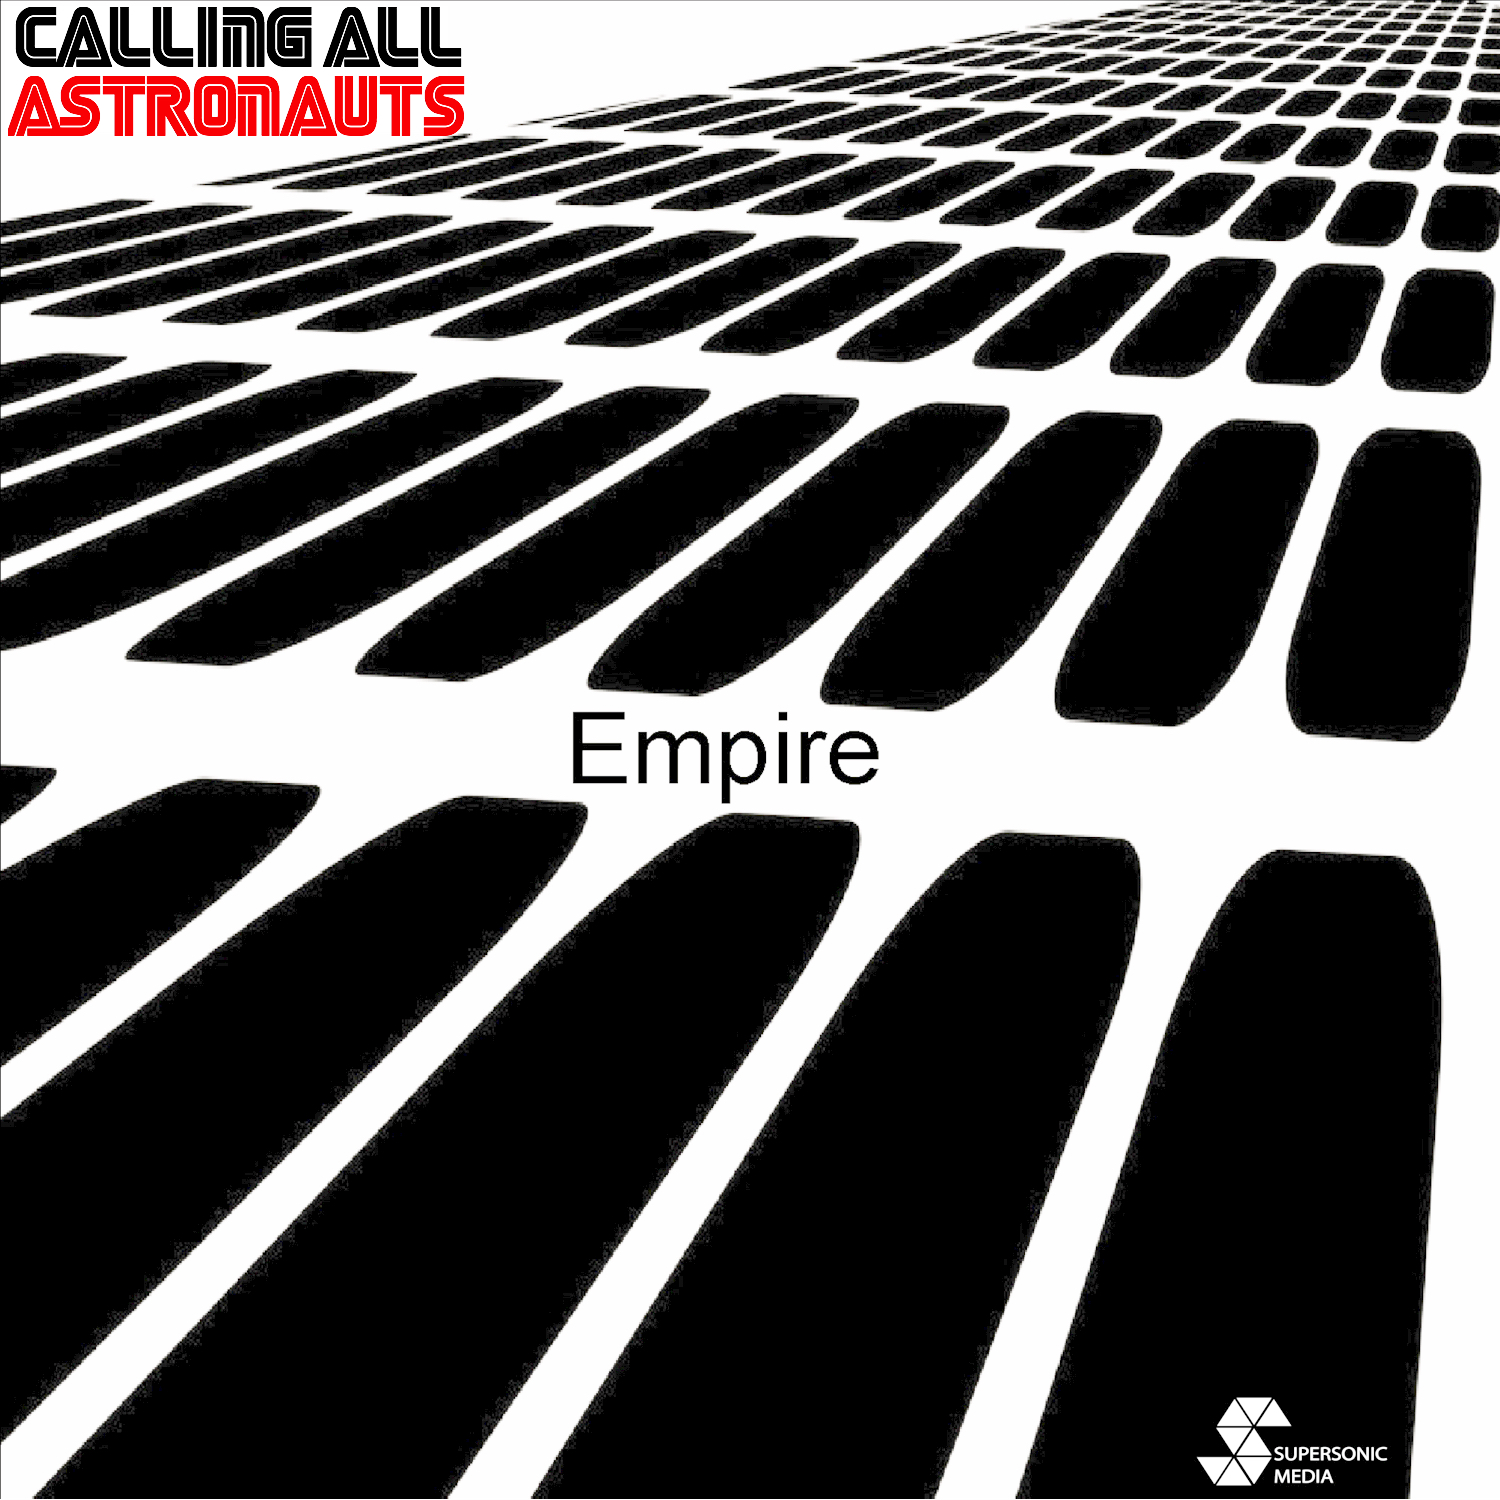 Calling All Astronauts - Empire